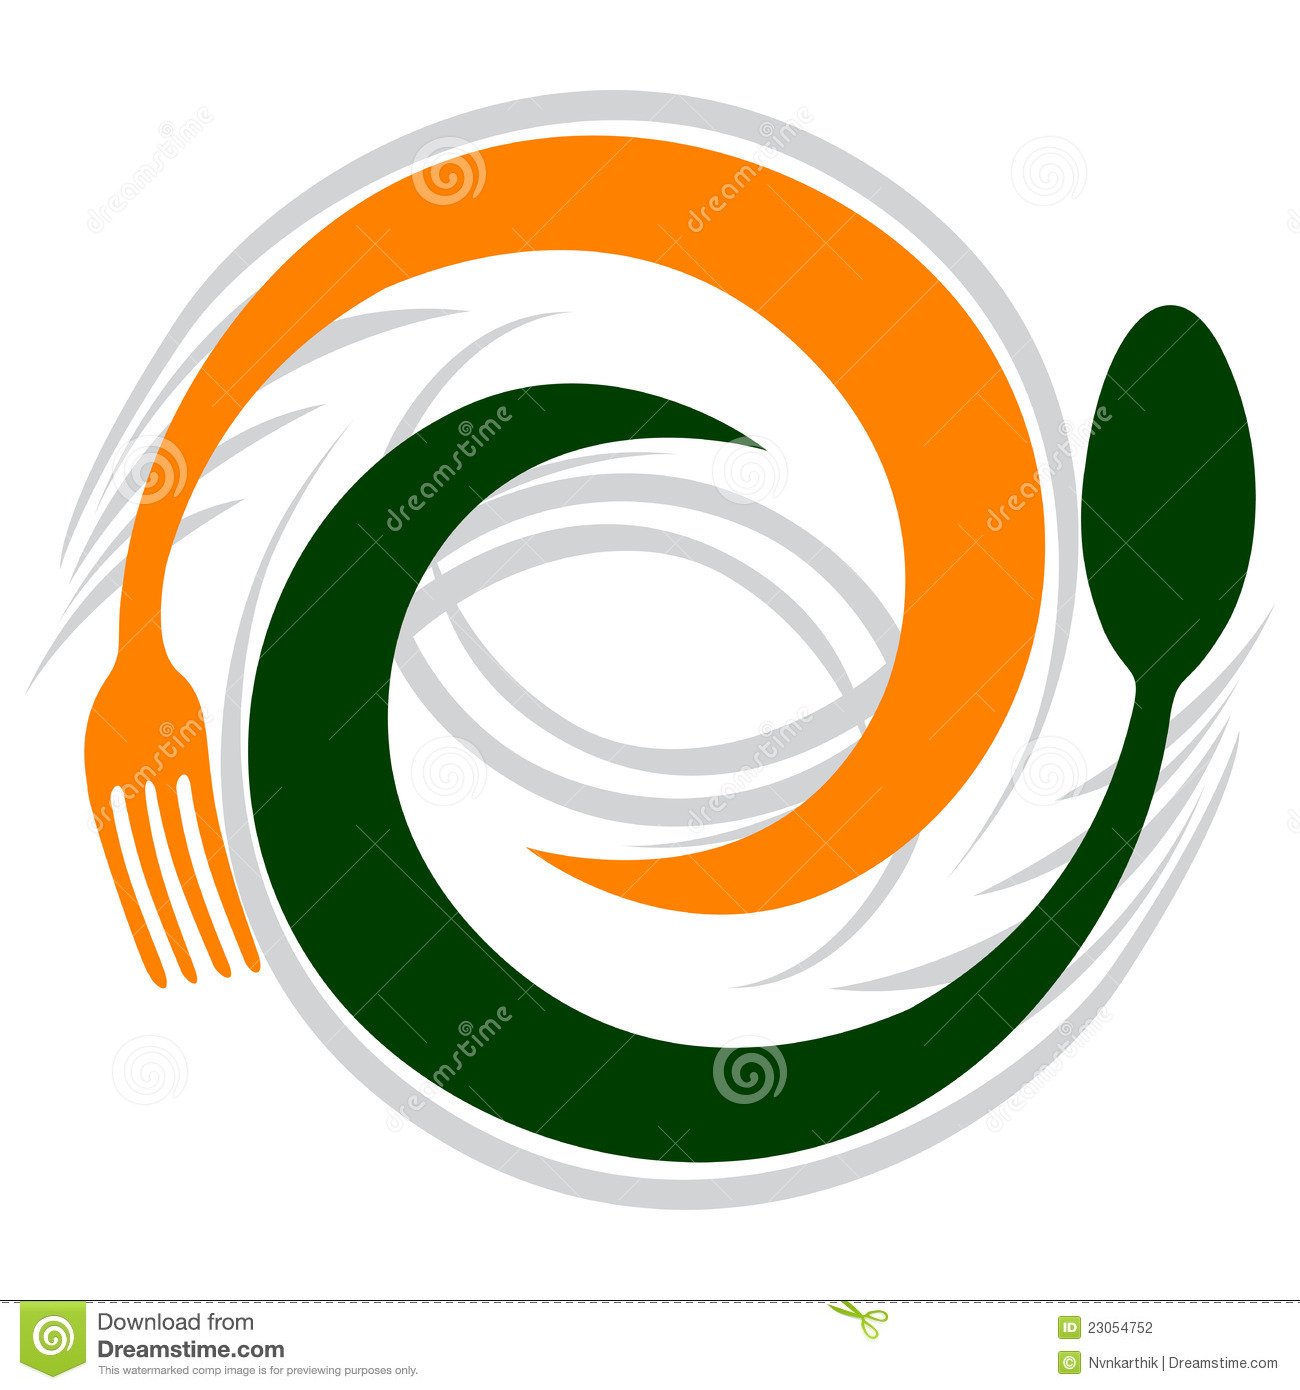 Spoon and fork stock vector. Image of collection, logotype ...